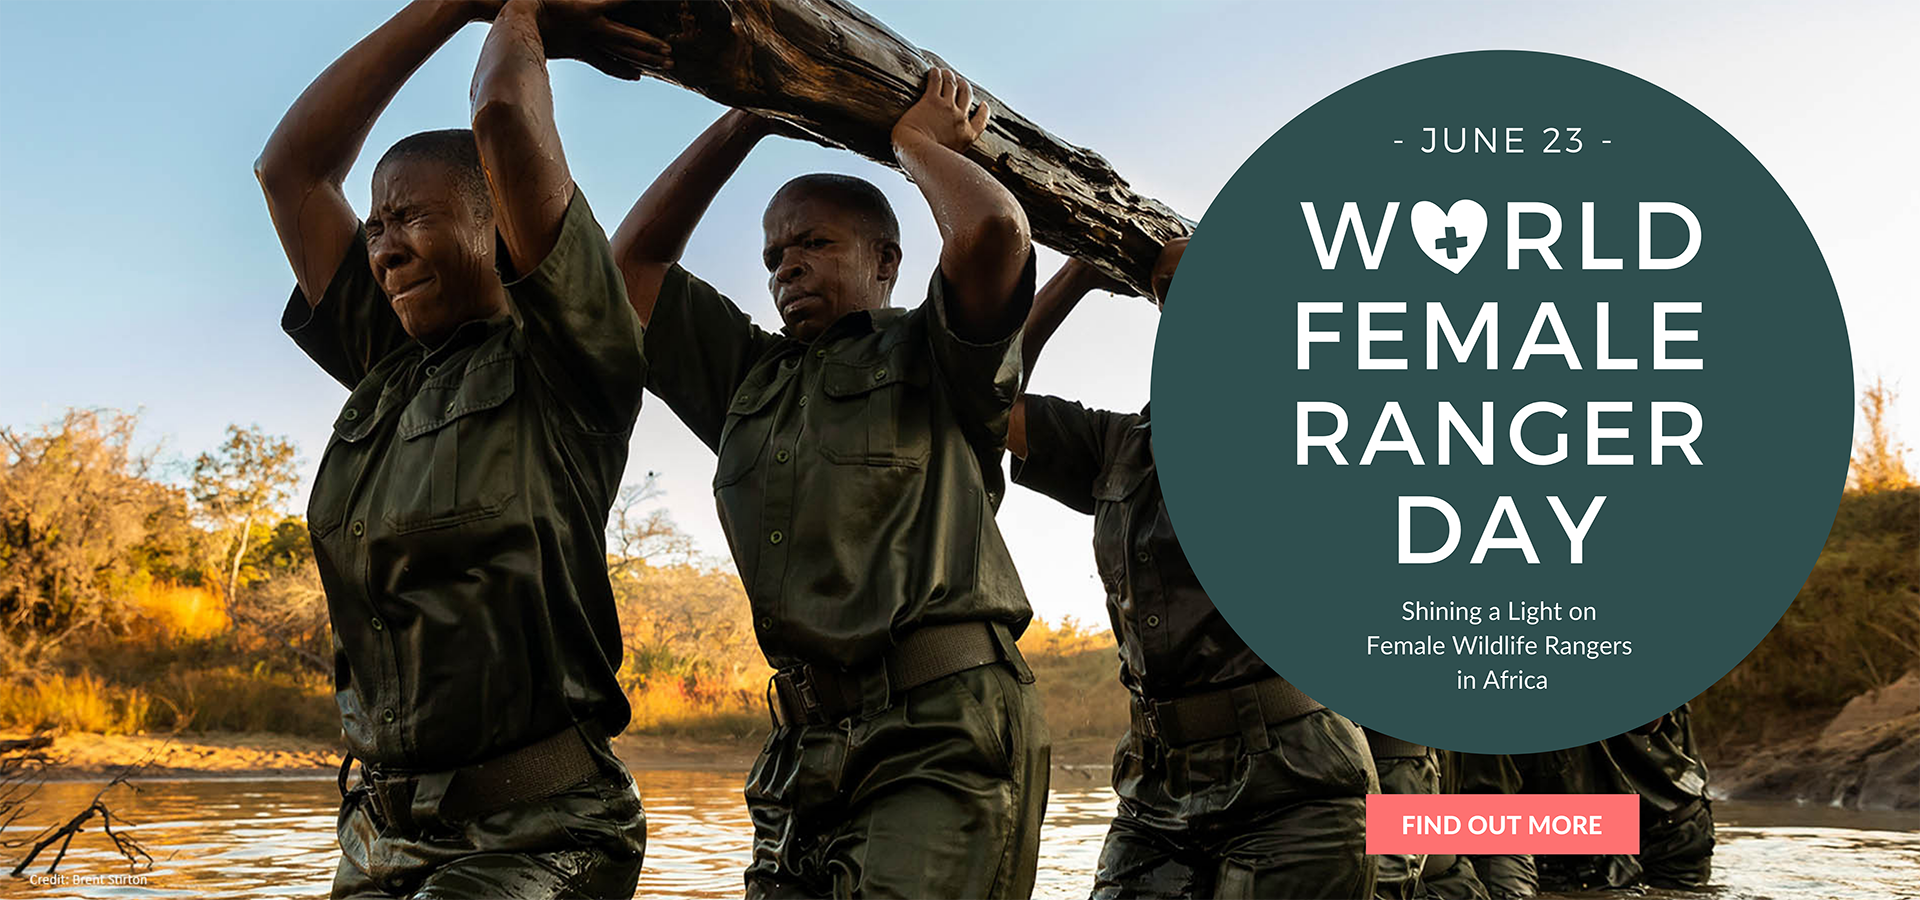 World Female Ranger Day